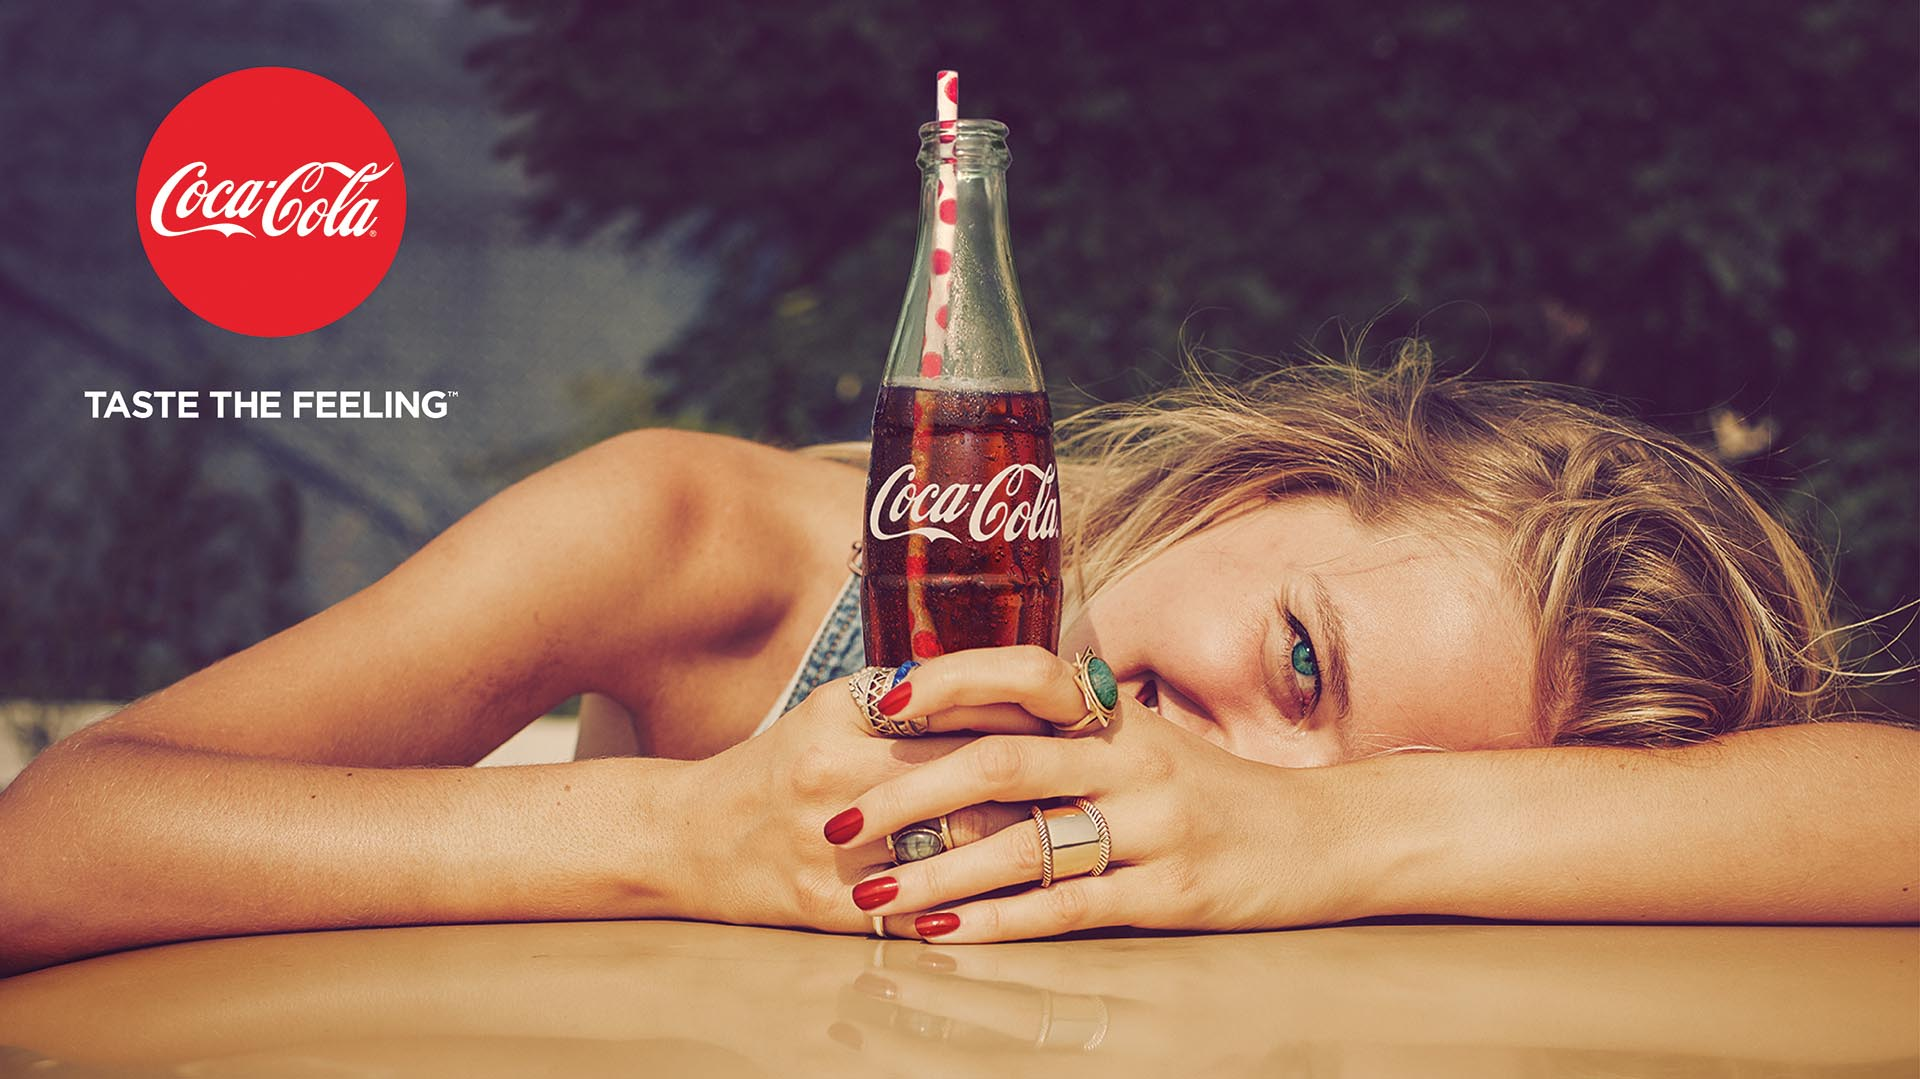 New coca cola announcement - 1 3